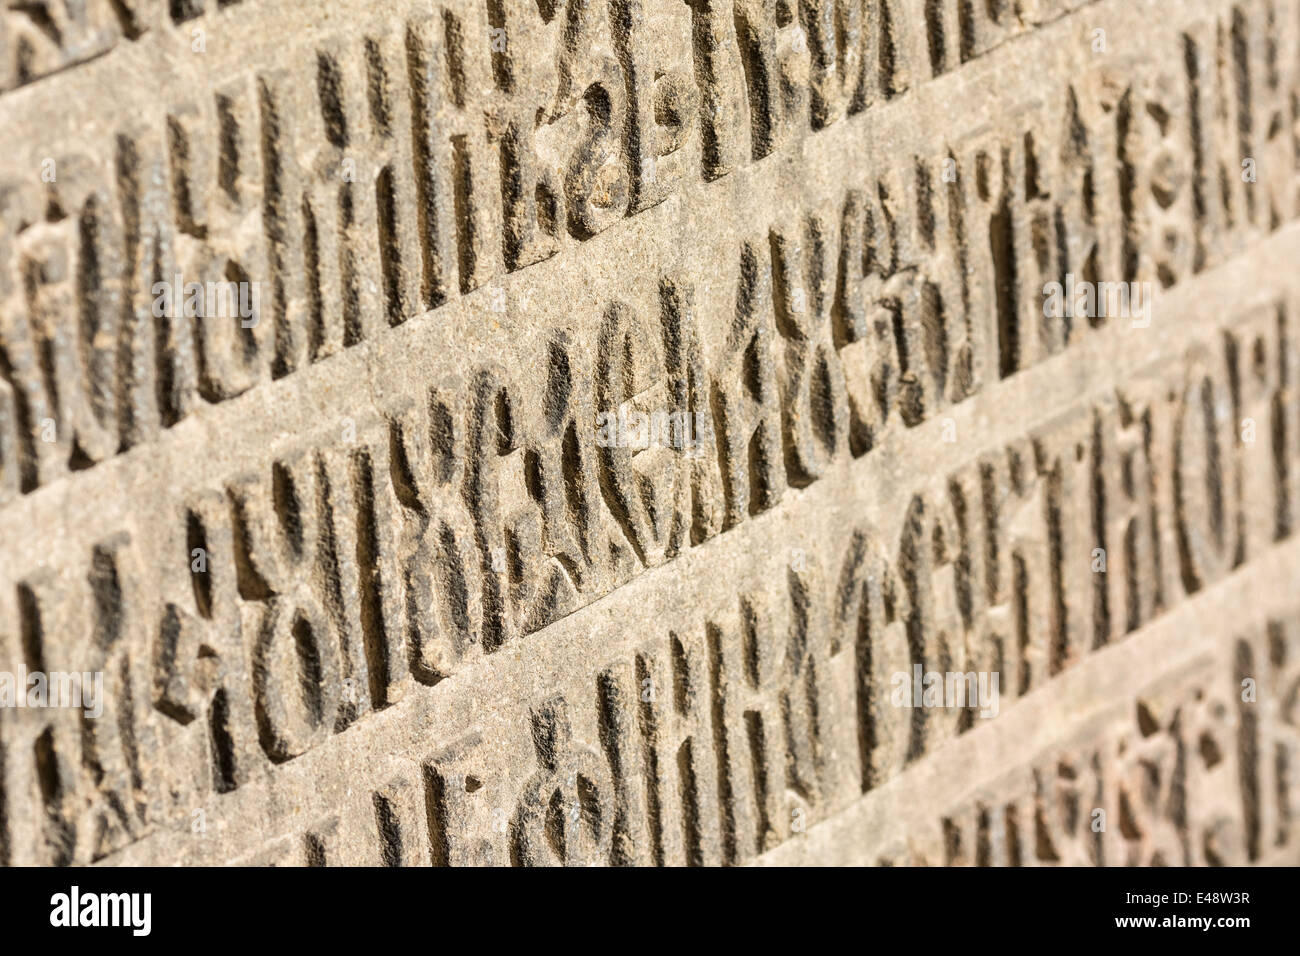 Old Cyrillic Script Letters Carved In Stone - Stock Image